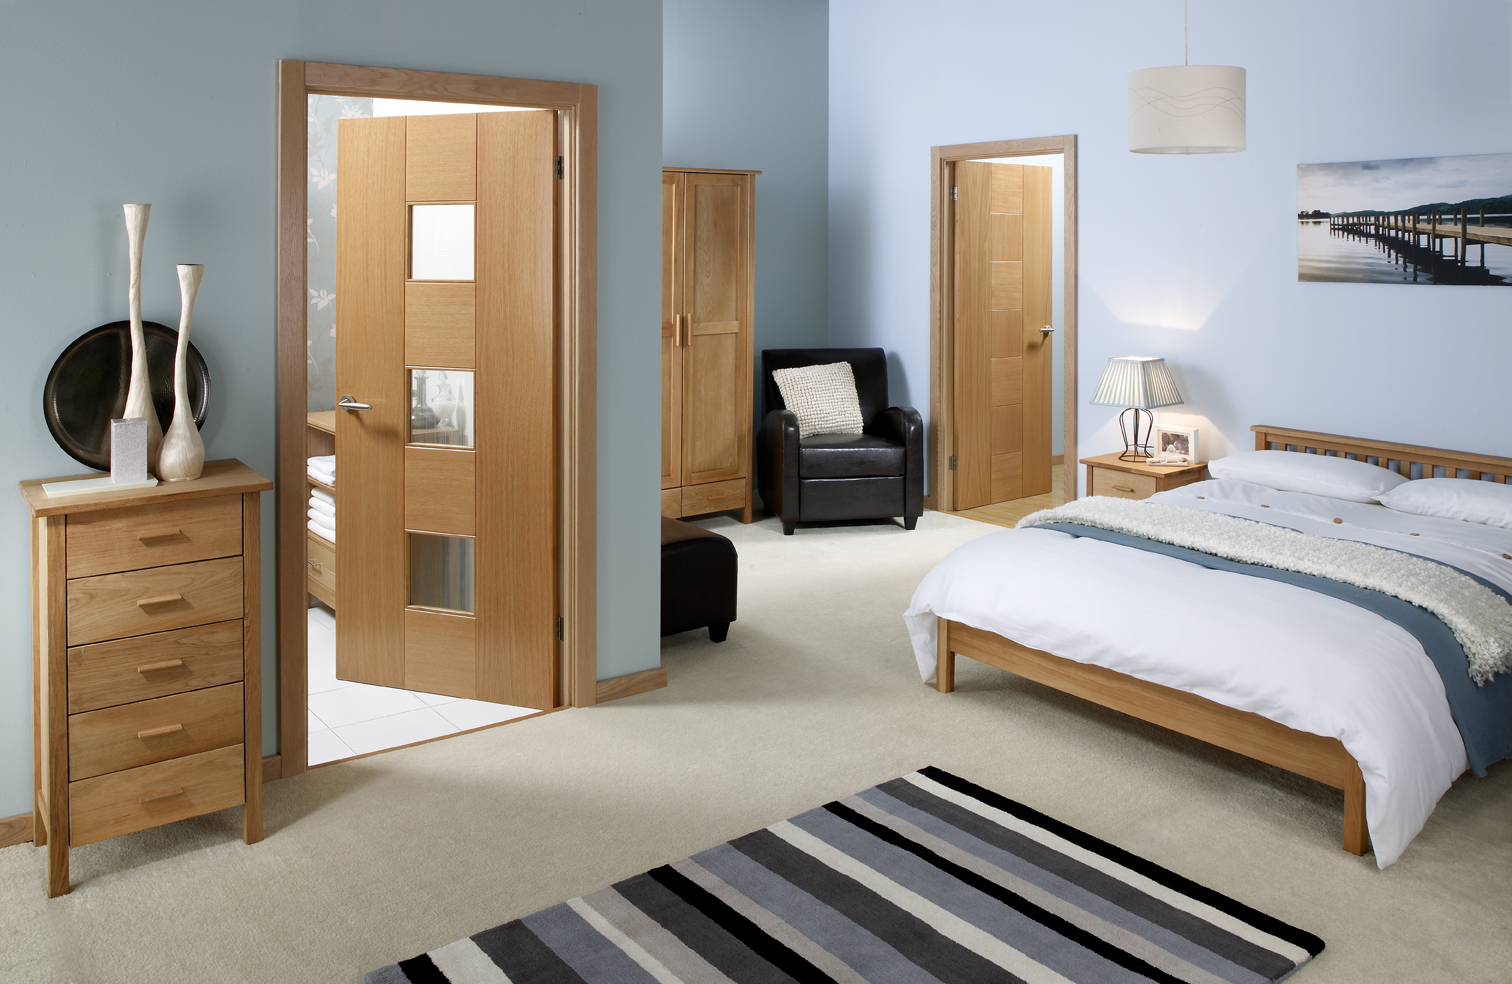 Soundproof interior bifold door is a good choice near the highway